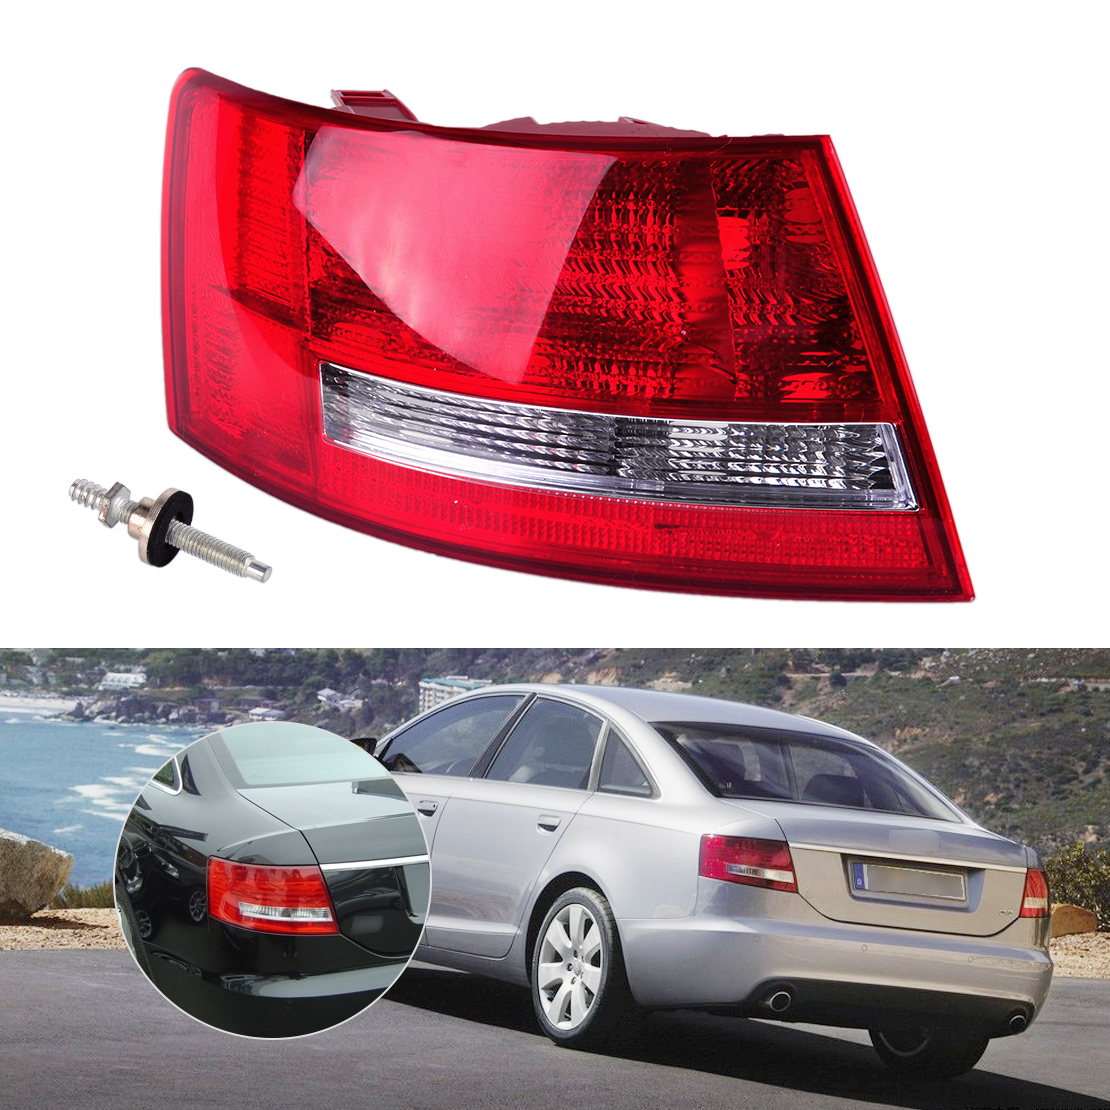 DWCX Rear Tail Left Light Taillight Assembly Lamp Housing without Bulb 4F5 945 095 L for Audi A6 /A6 Quattro Sedan 2005 2006 -08 серьги гвоздики sokolov золотые серьги с куб циркониями nd027133